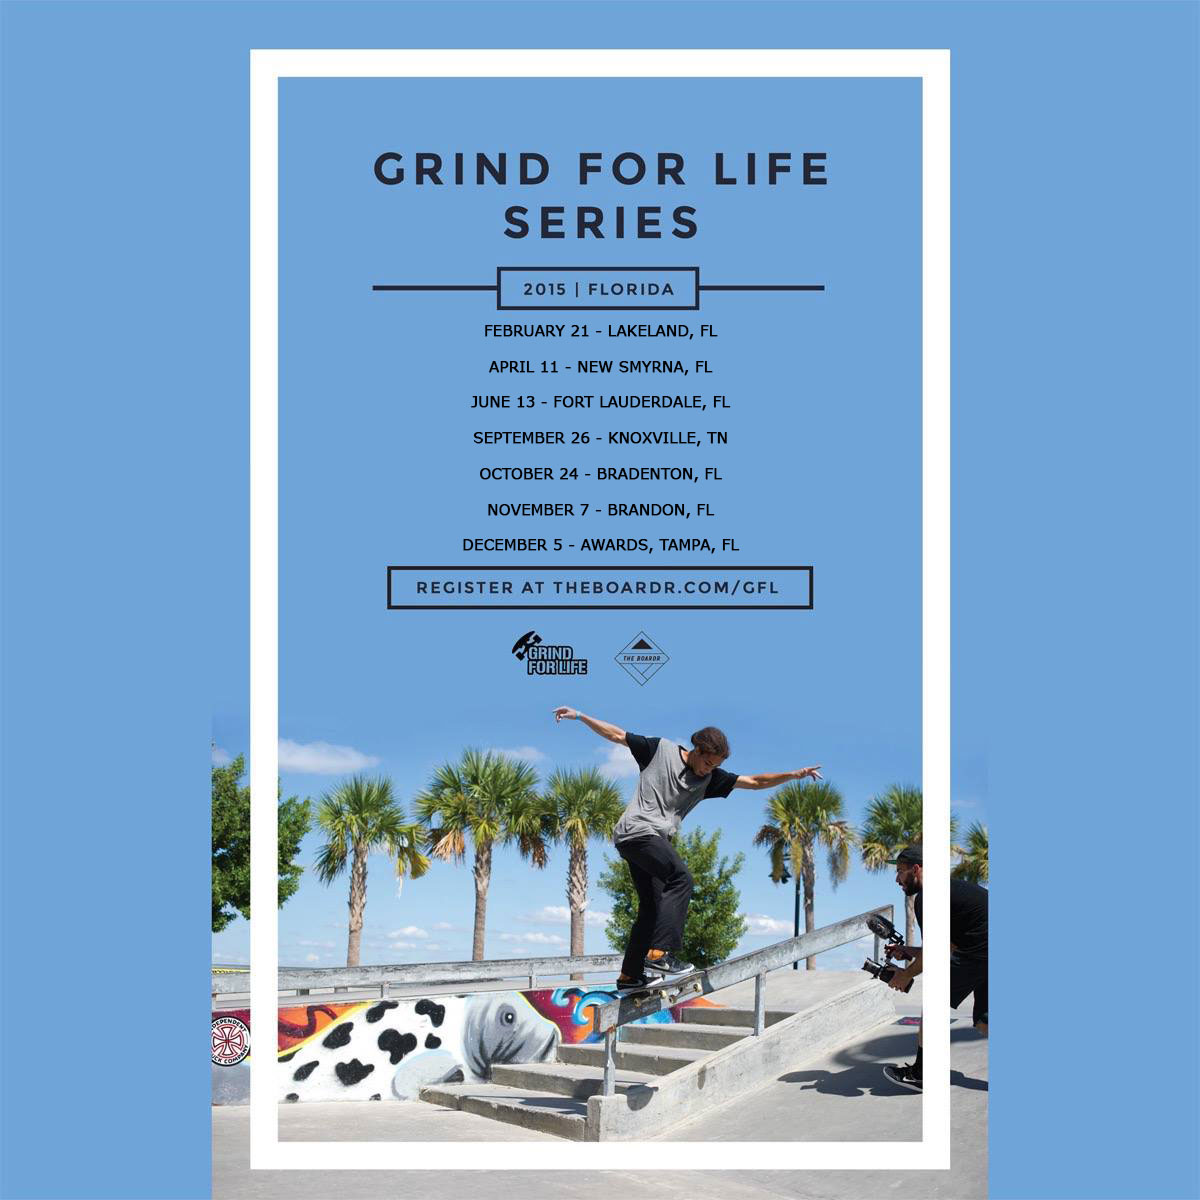 Grind for Life Florida Skateboarding Series